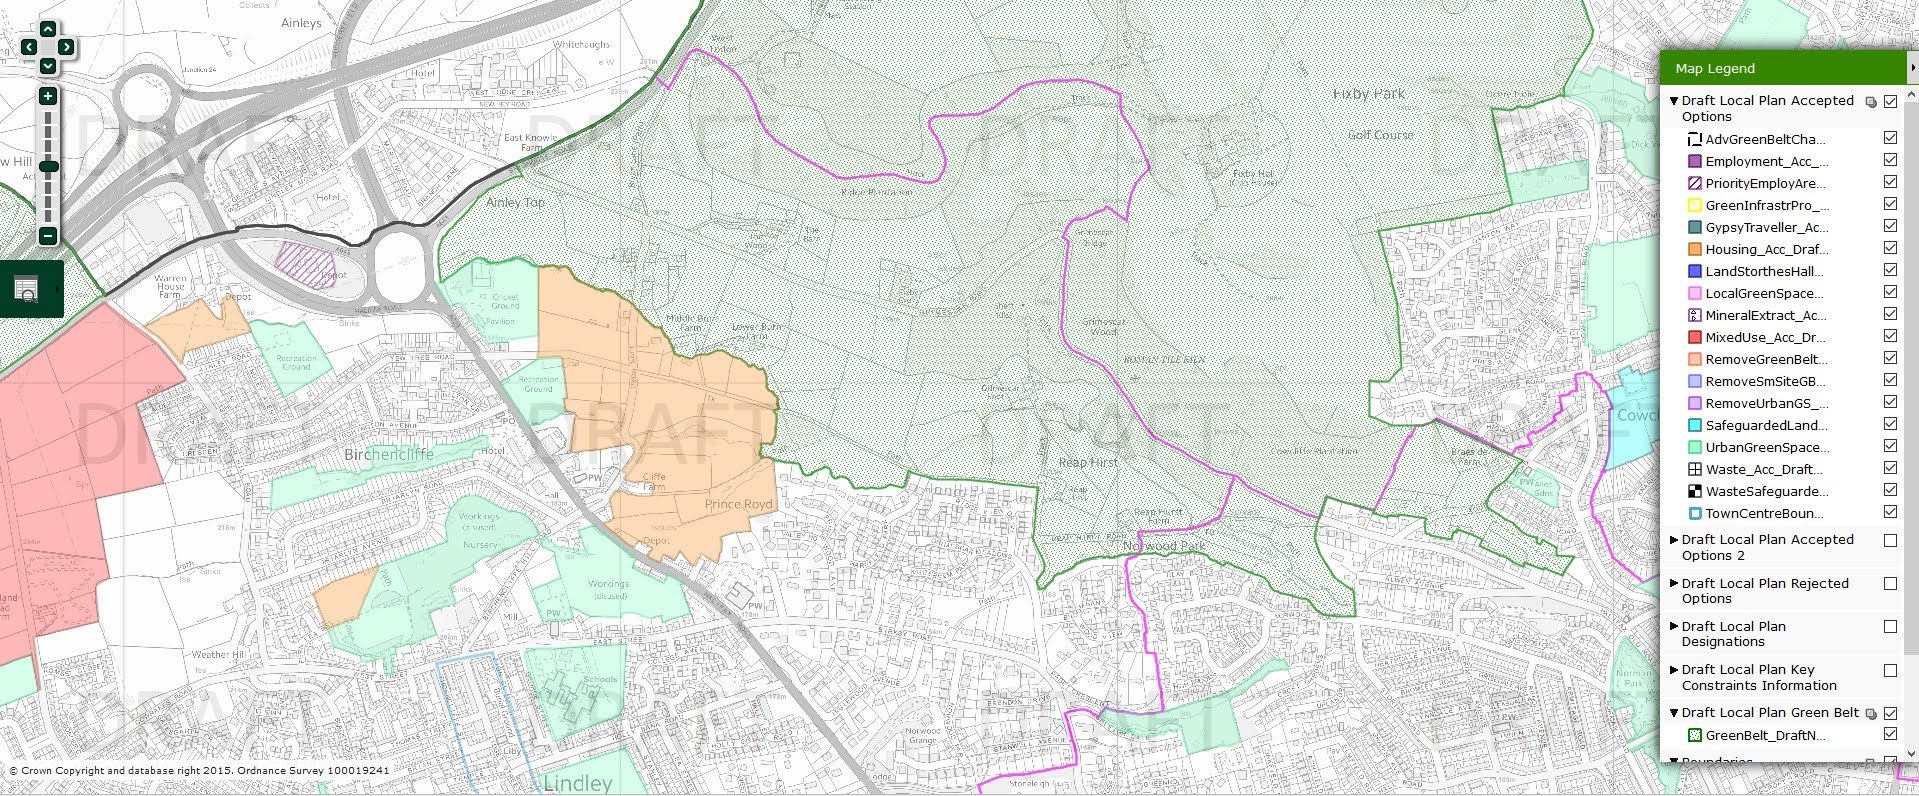 Green Belt proposed